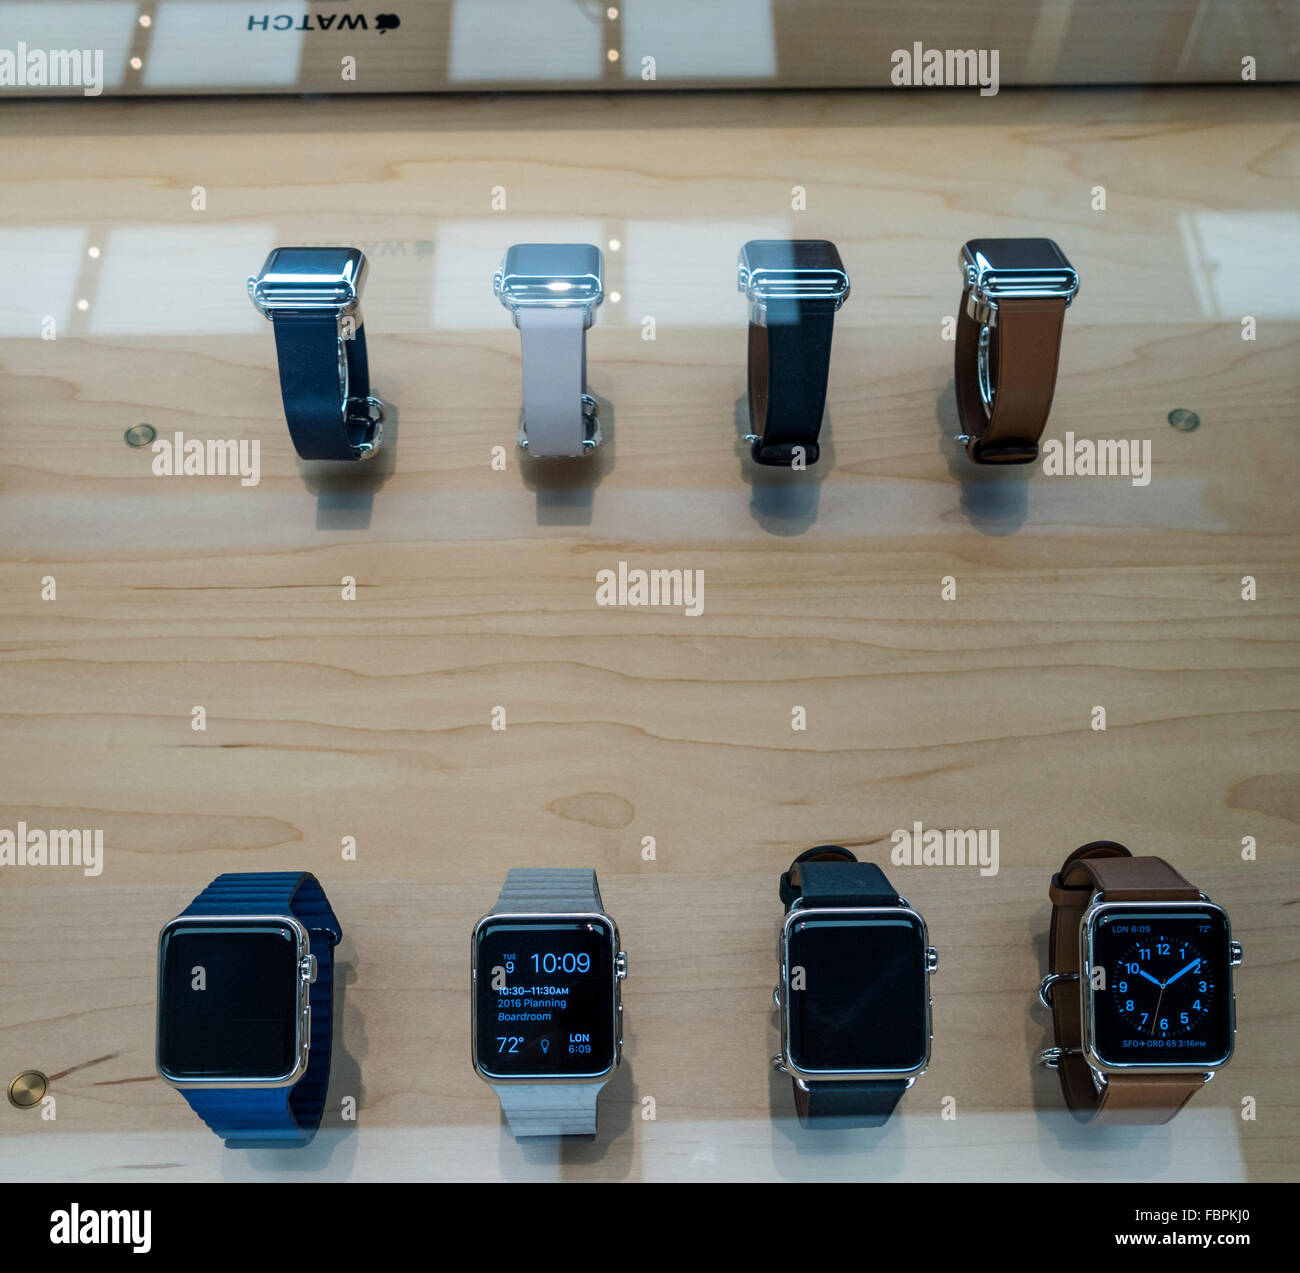 A selection of Apple Watches on sale in Apple Store - Stock Image